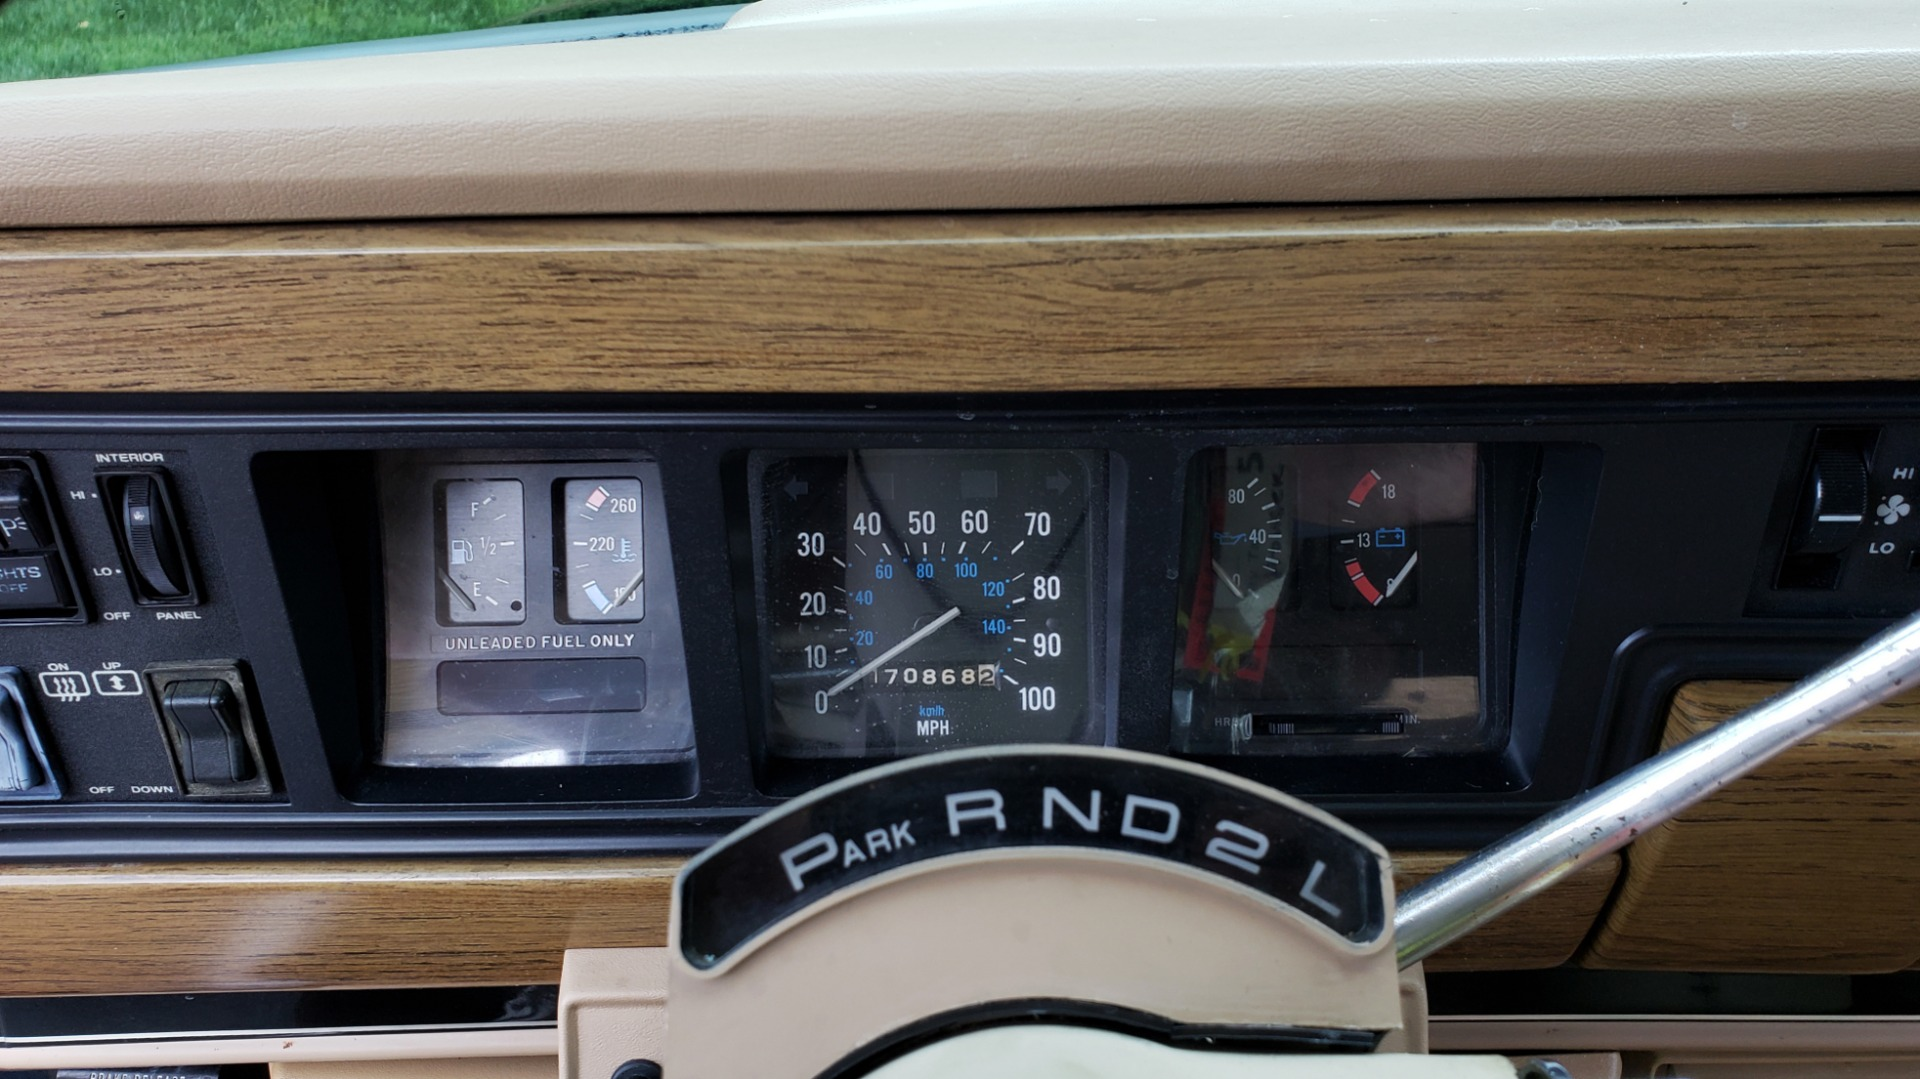 Used 1989 Jeep GRAND WAGONEER 4x4 / 5.9L V8 / 3-SPEED AUTO / PIONEER STEREO for sale Sold at Formula Imports in Charlotte NC 28227 41